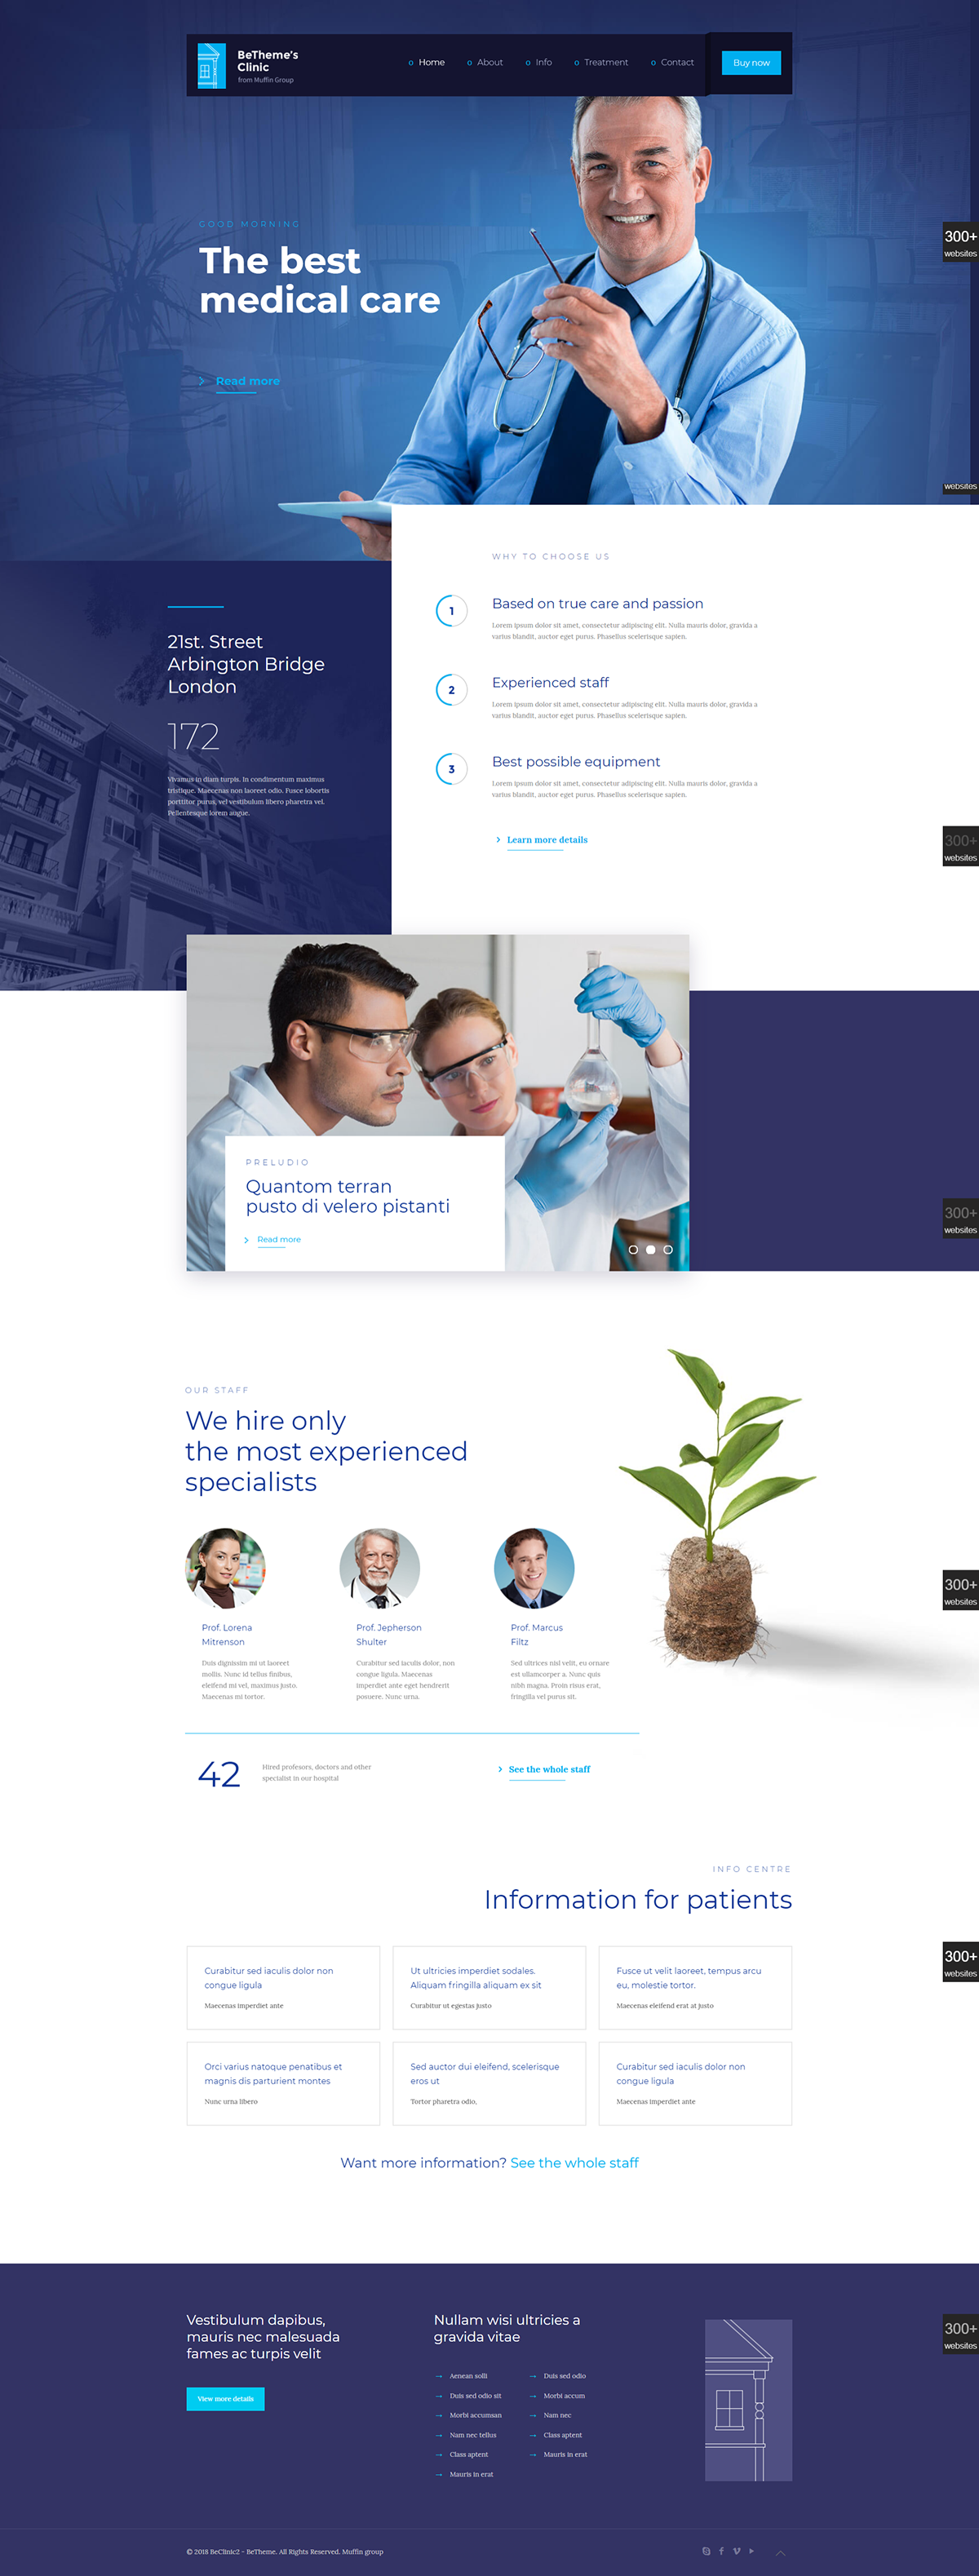 Clinic wordpress business website template design on behance contact me for web development service mehedidityahoo clinic wordpress website wajeb Gallery